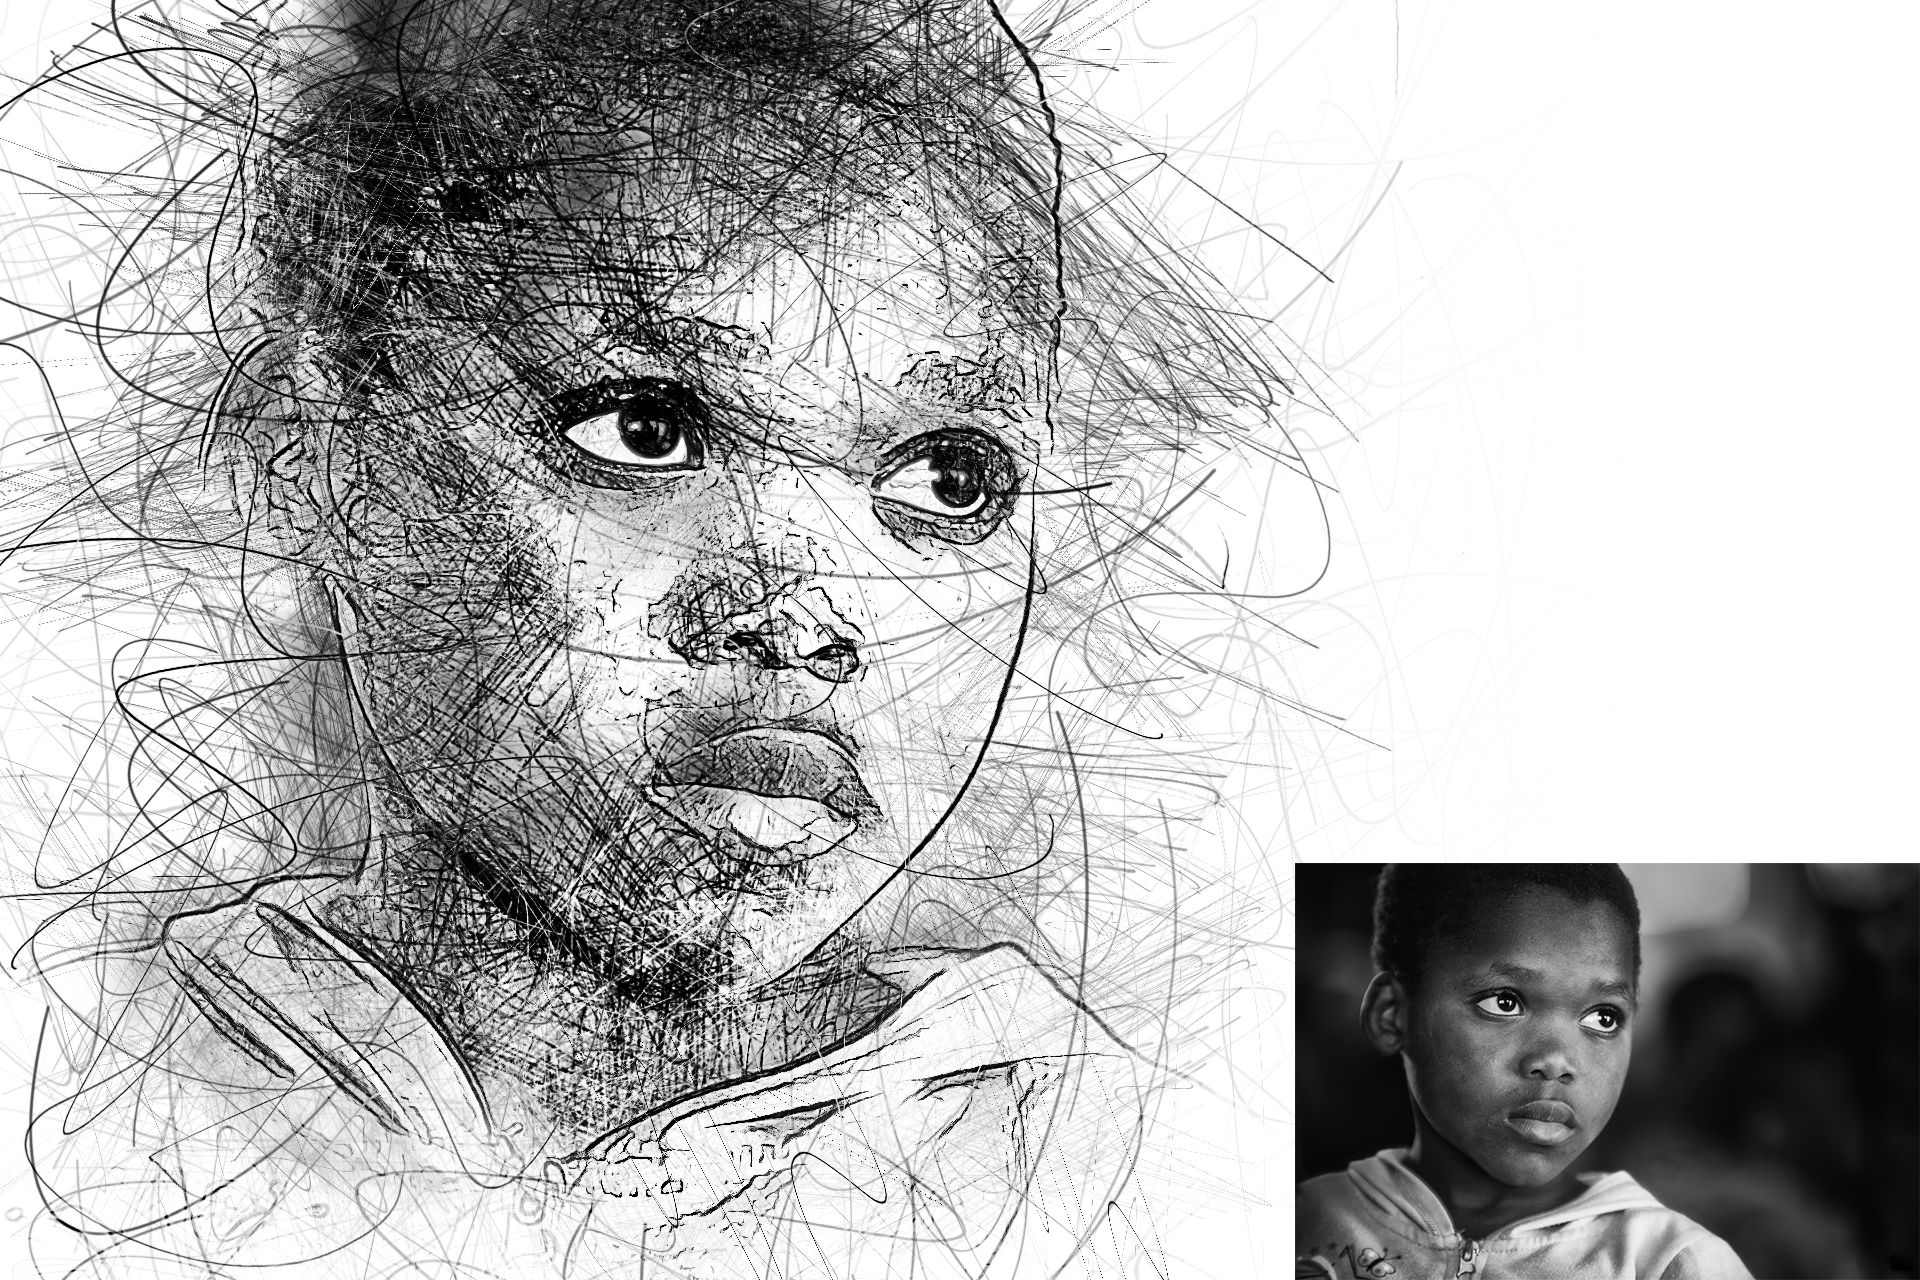 Portrait Scribble Sketch Art Photoshop Action Art Sketches